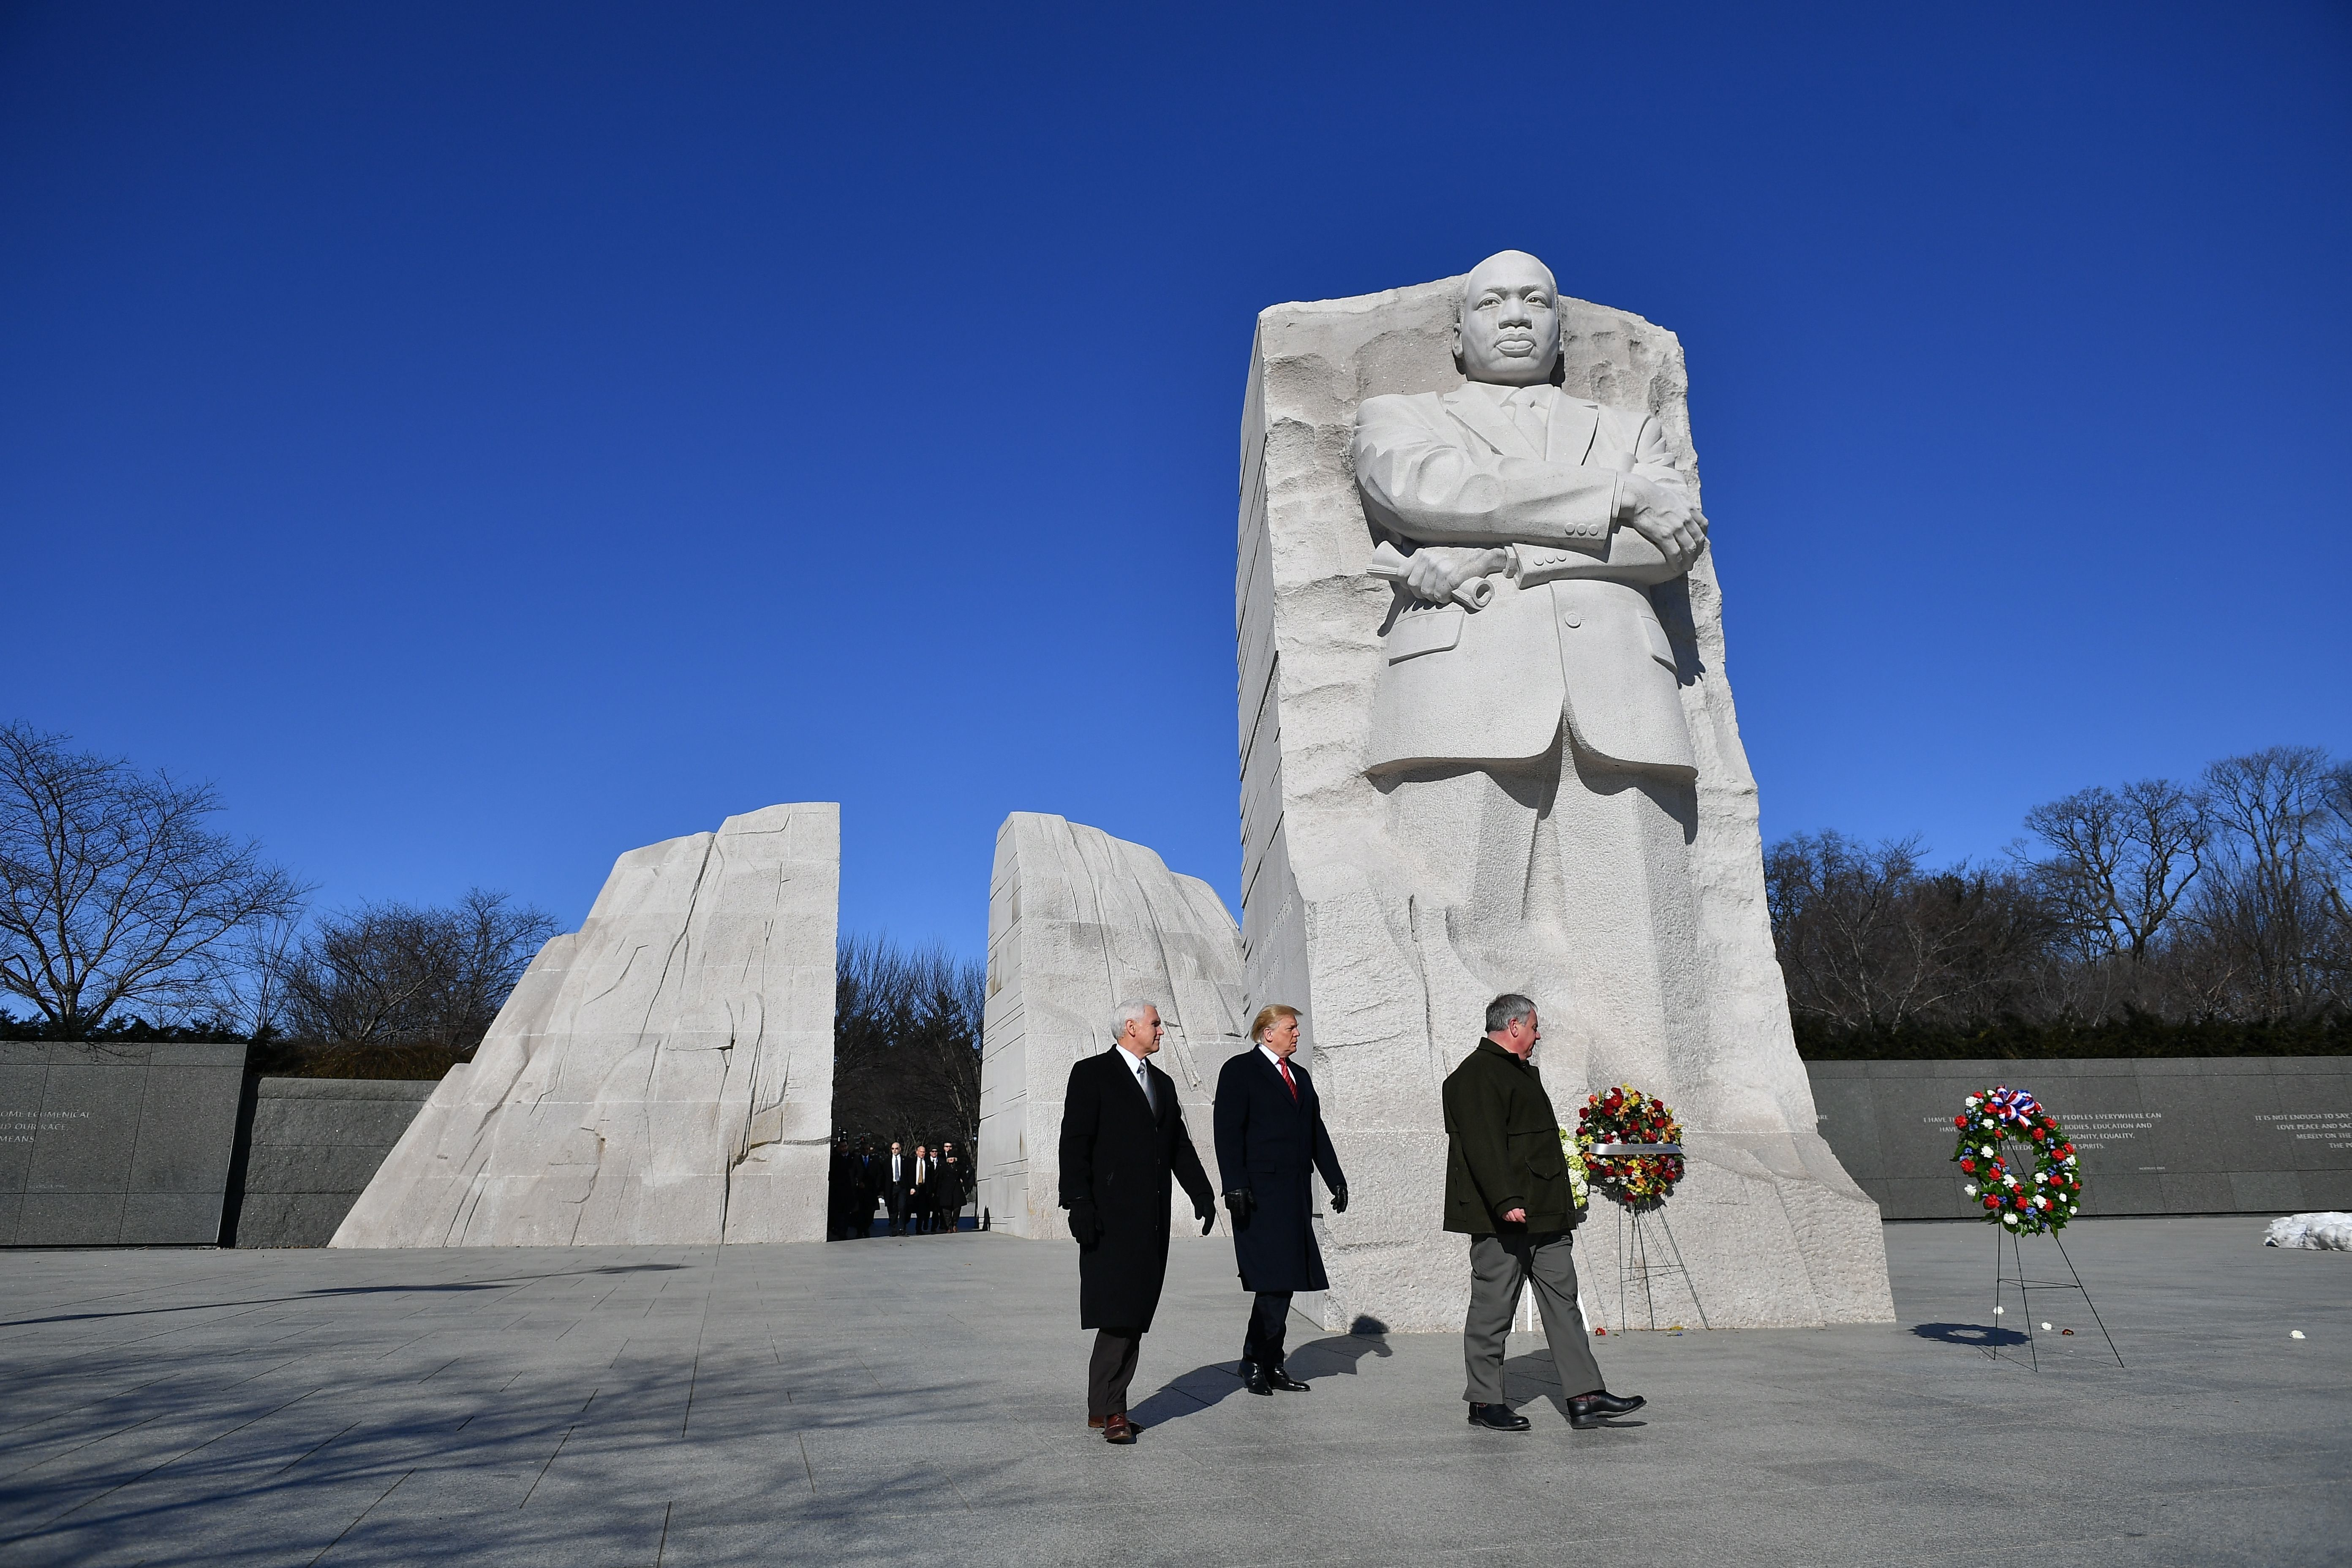 Trump Spent 2 Minutes At Martin Luther King Jrs Memorial Jokes Abound